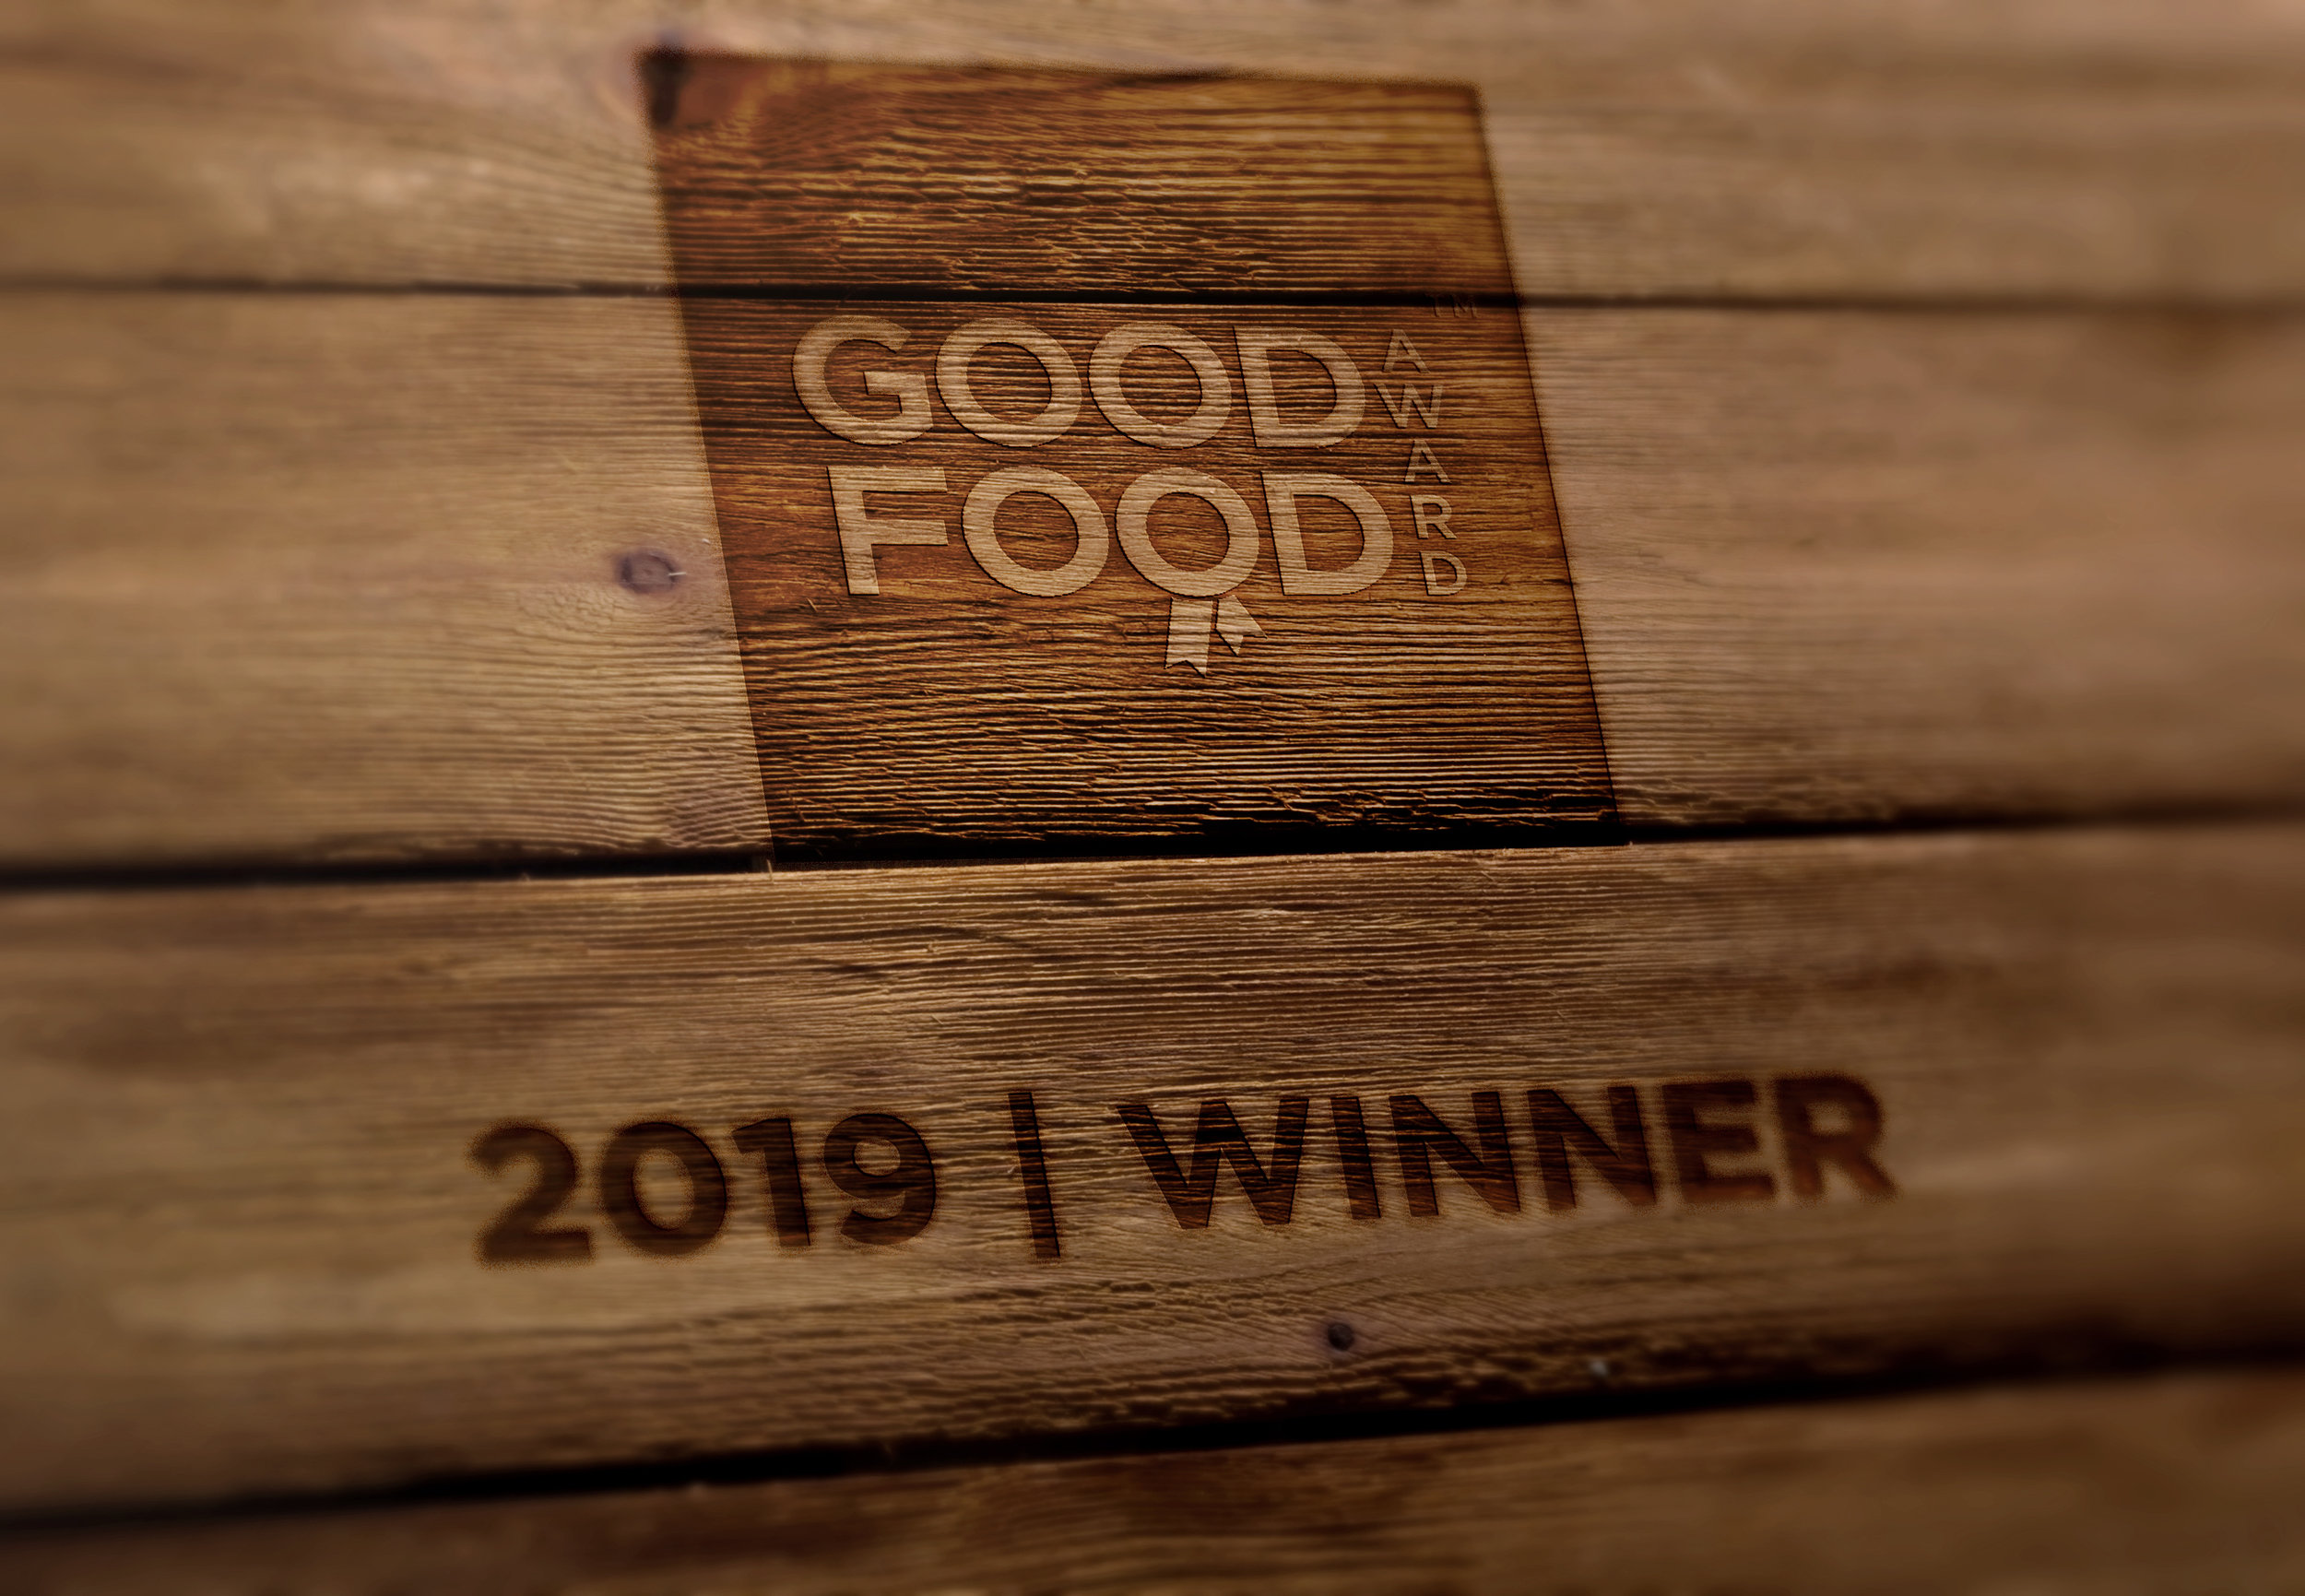 Good Food Award 2019